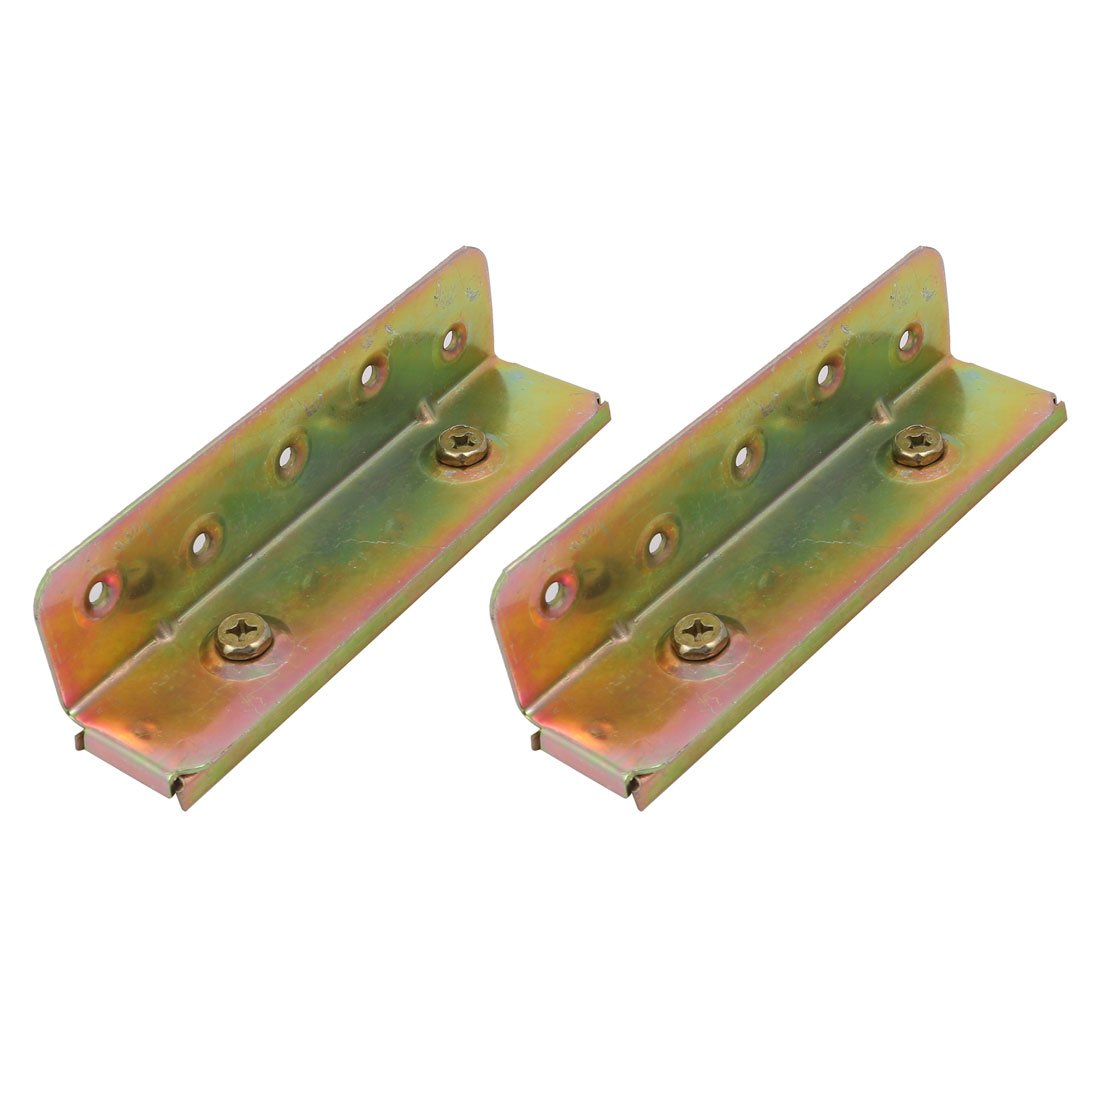 uxcell 6-inch Screw Fixed Bed Hinge Rail Brackets Connecting Fittings 2 Sets